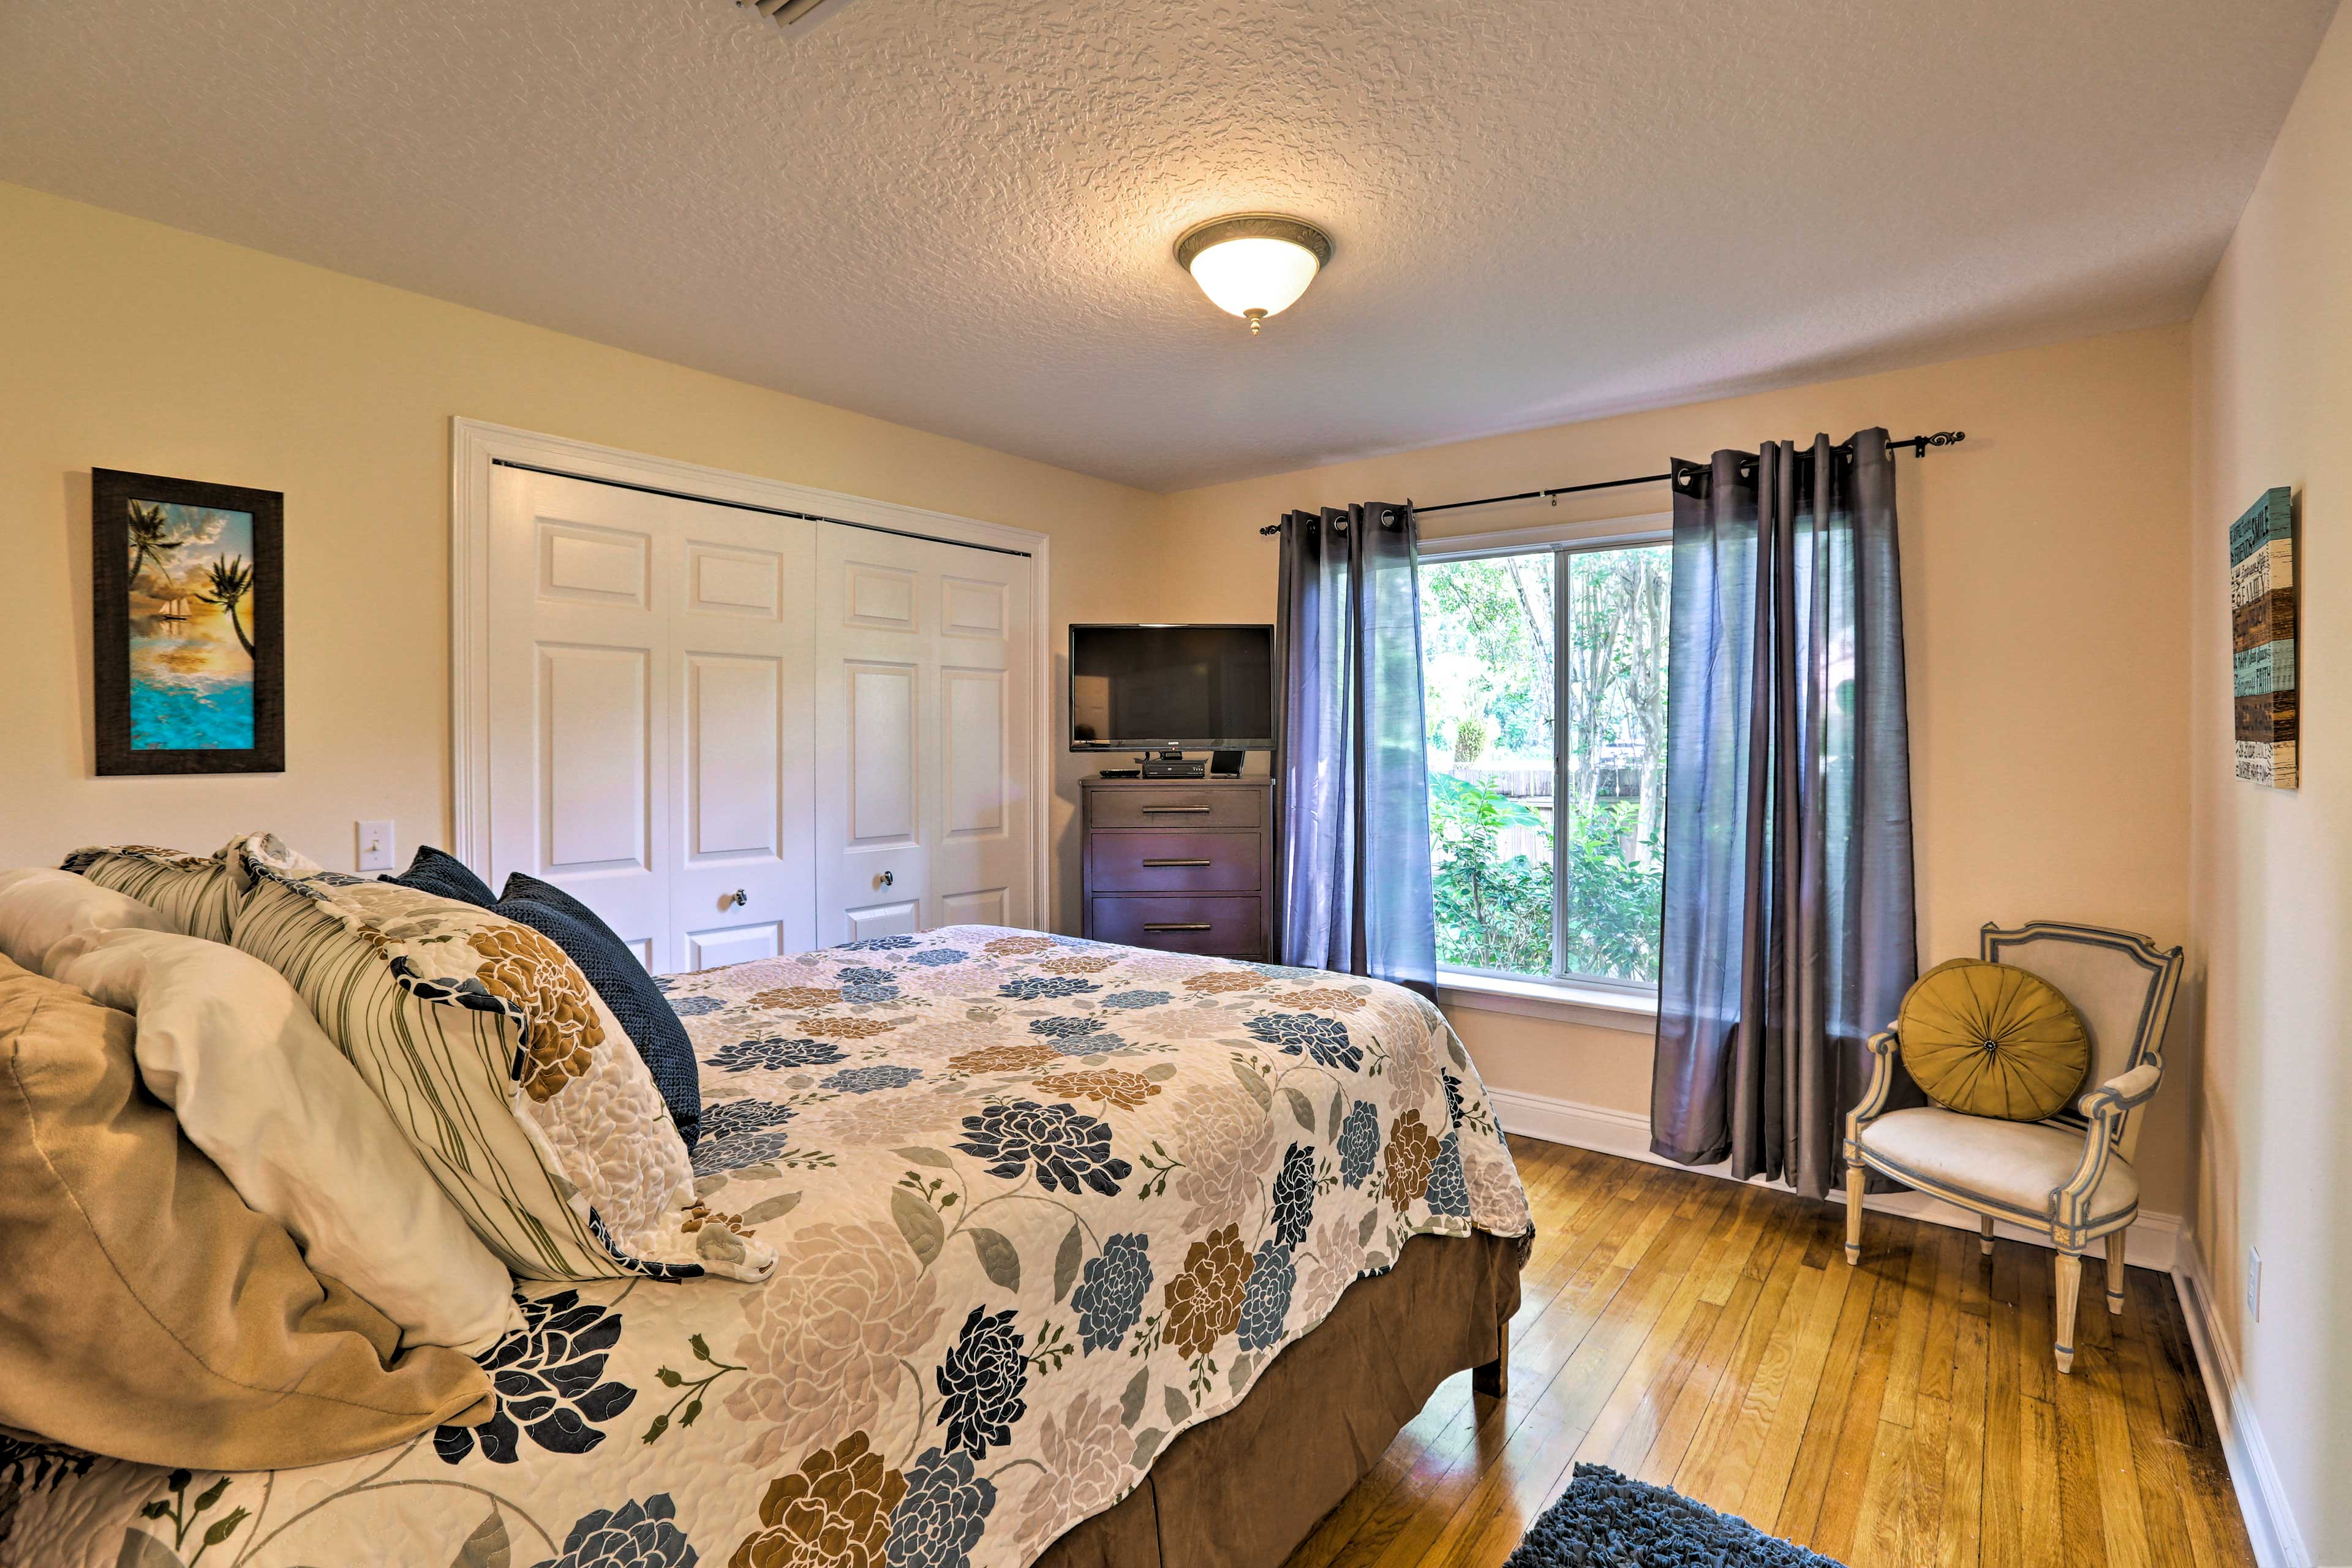 The master bedroom is a welcome oasis.